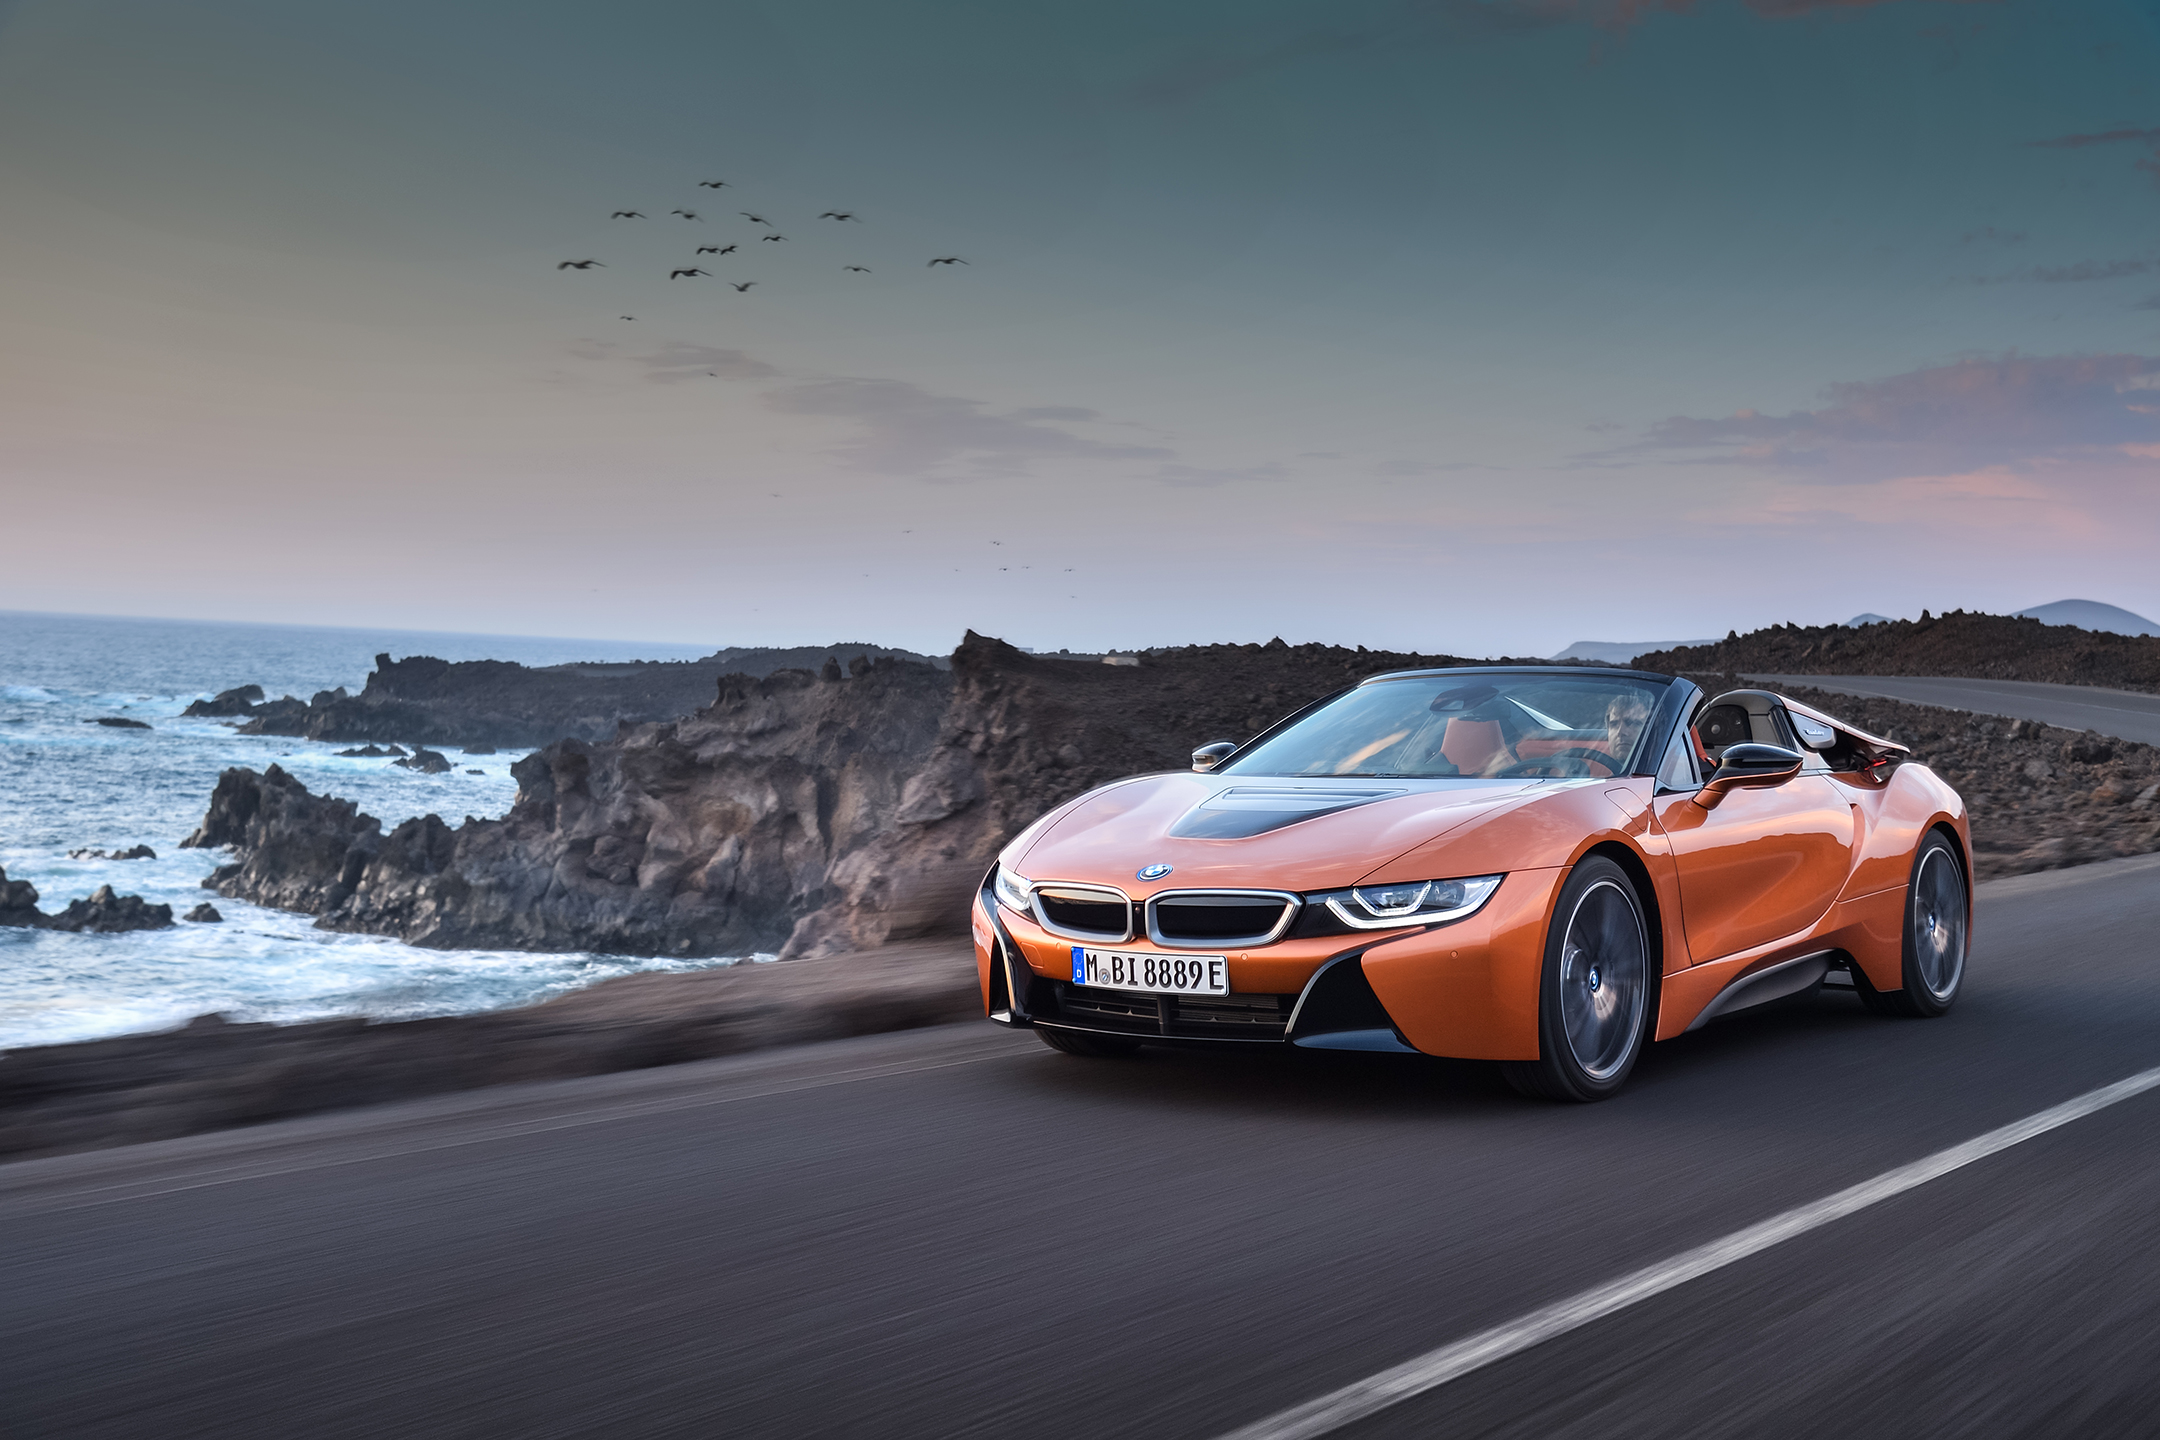 BMW i8 Roadster - 2017 - front side-face / profil avant